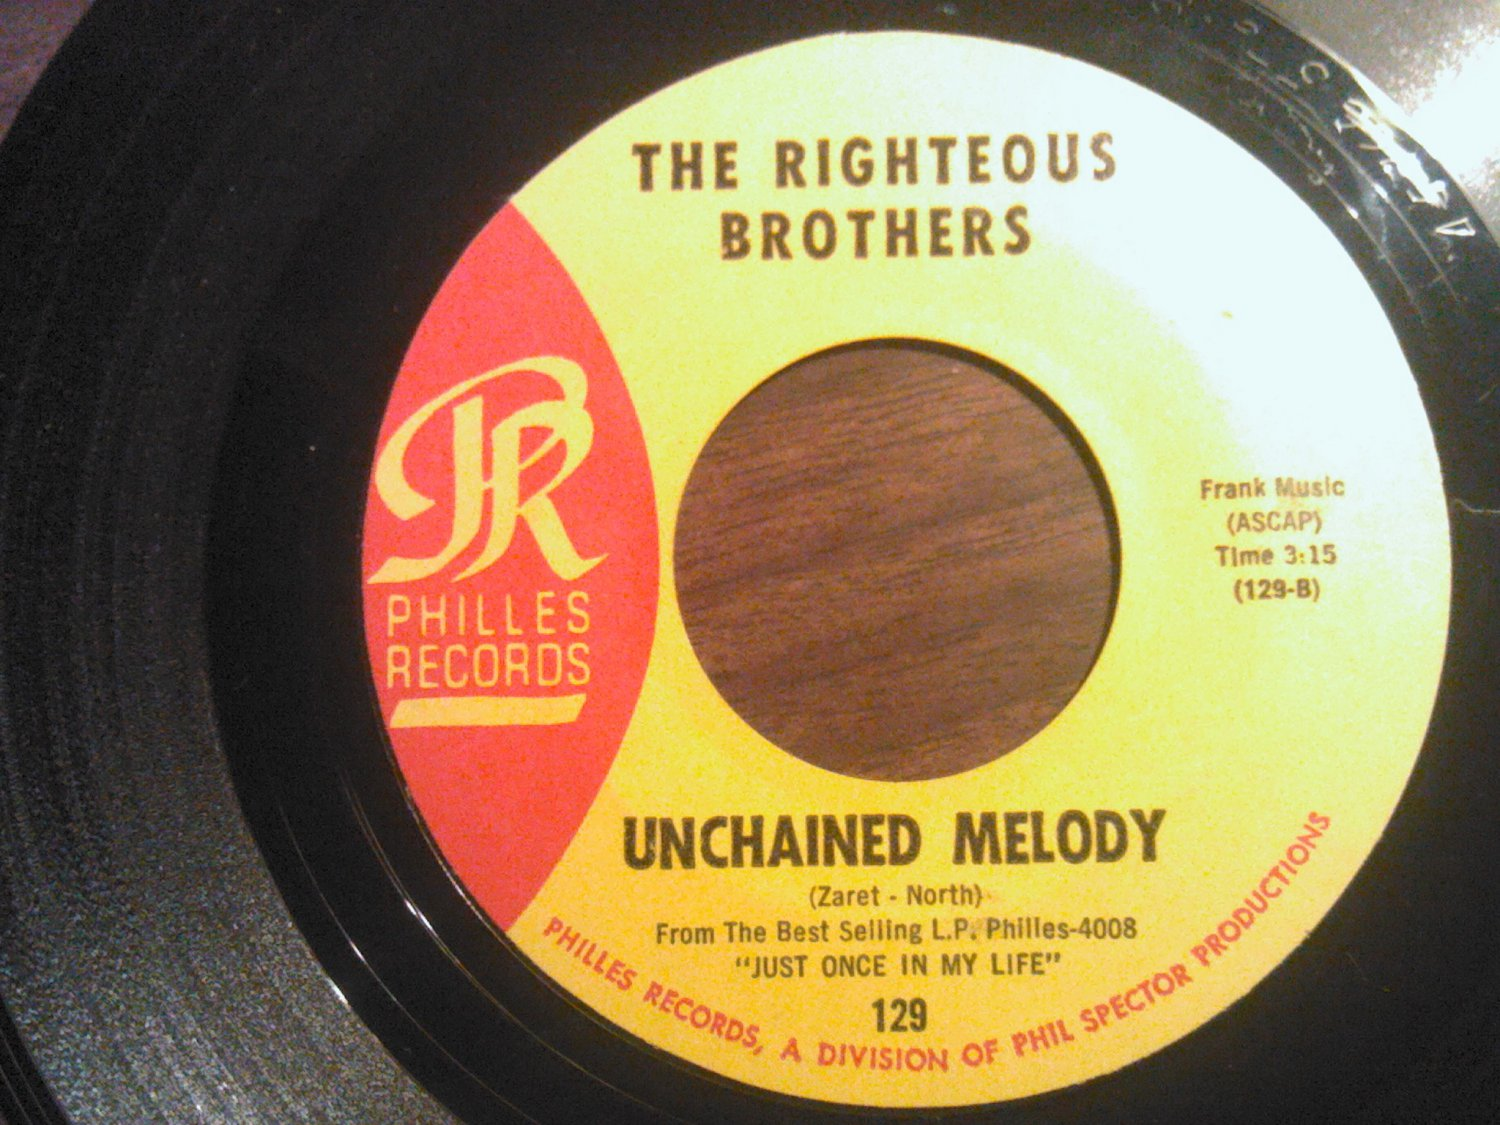 45 THE RIGHTEOUS BROTHERS Unchained Melody b/w Hung On You philles vintage vinyl record